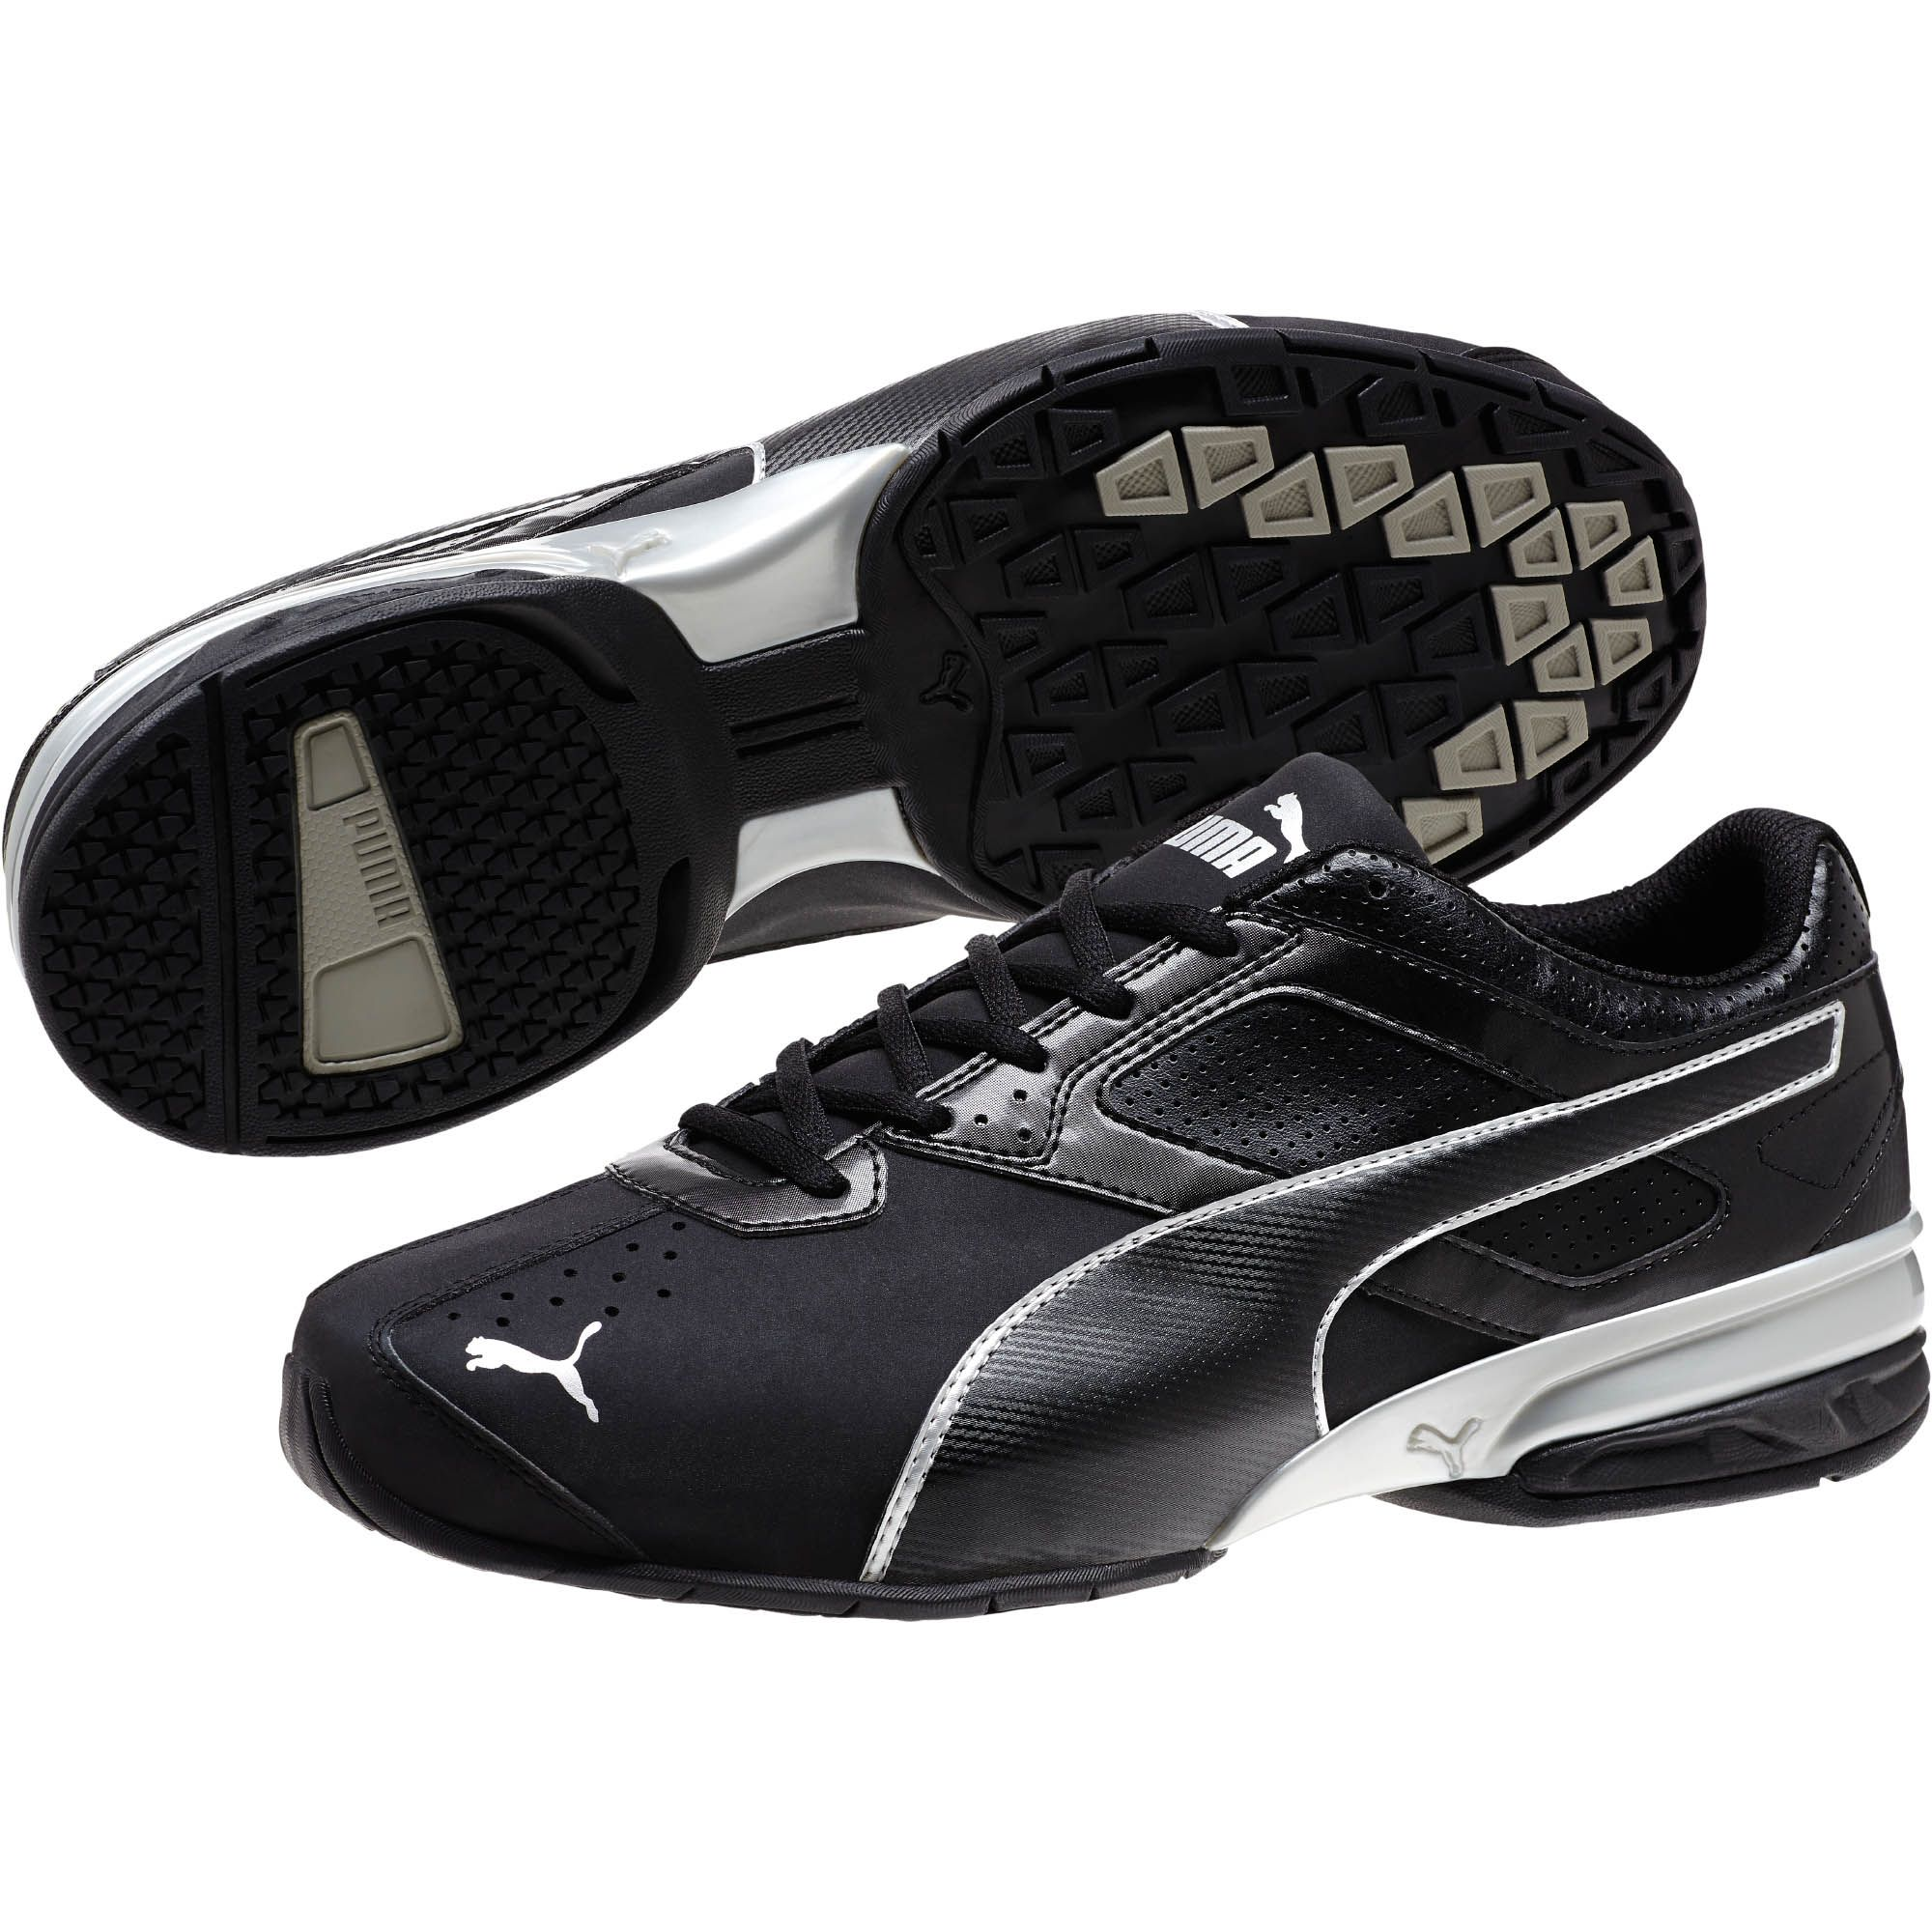 Puma Tazon 6 Wide Men' Running Shoes